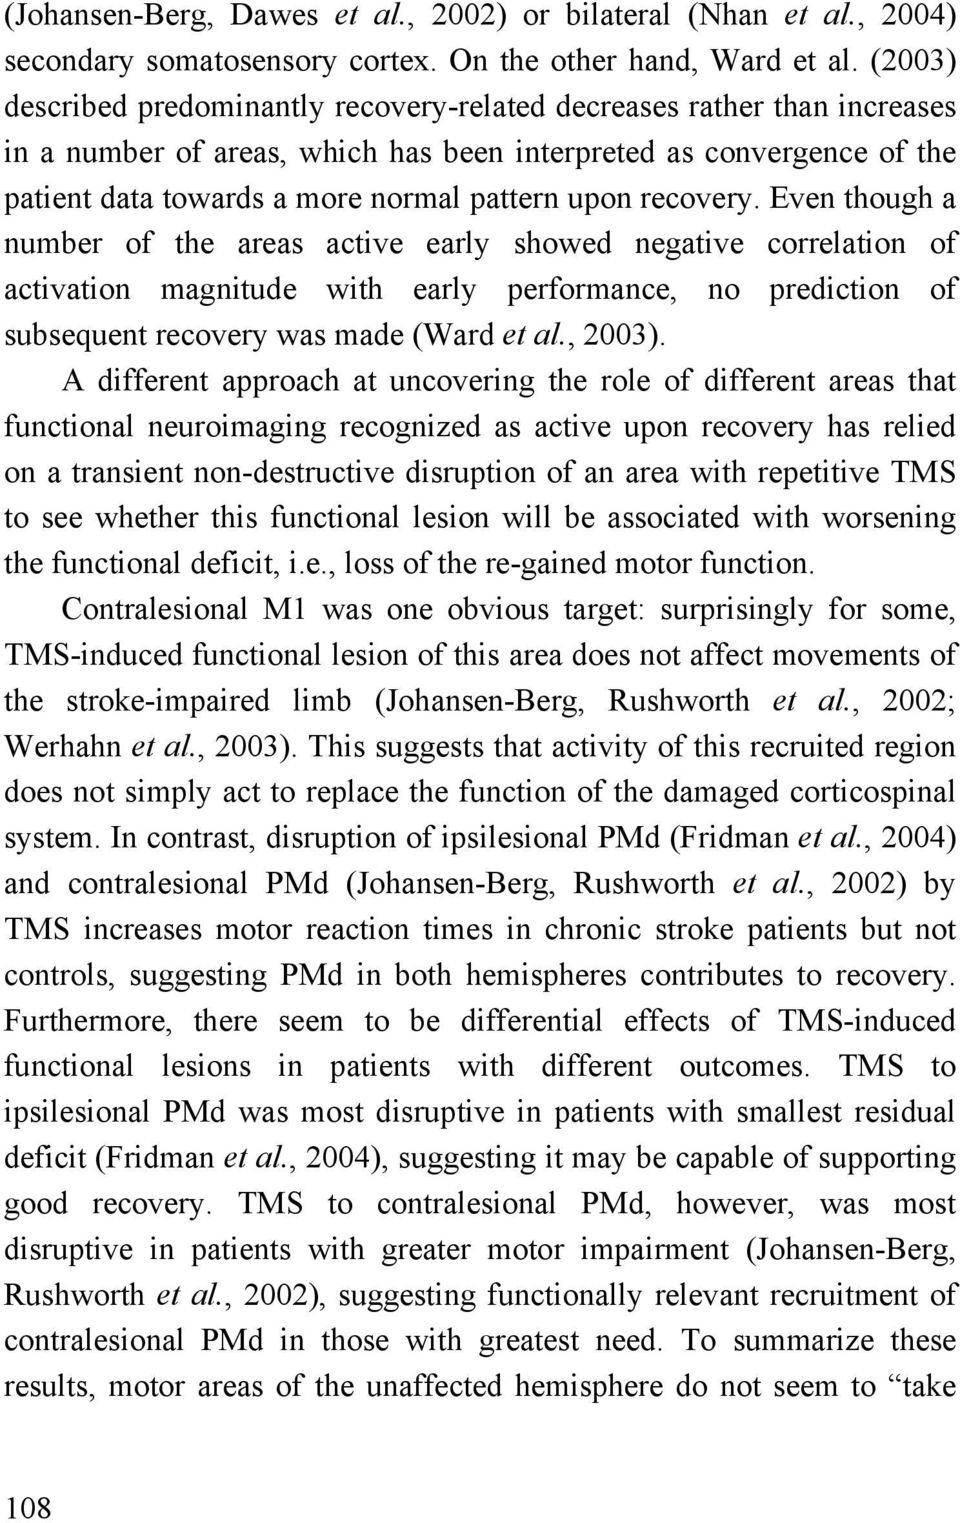 recovery. Even though a number of the areas active early showed negative correlation of activation magnitude with early performance, no prediction of subsequent recovery was made (Ward et al., 2003).